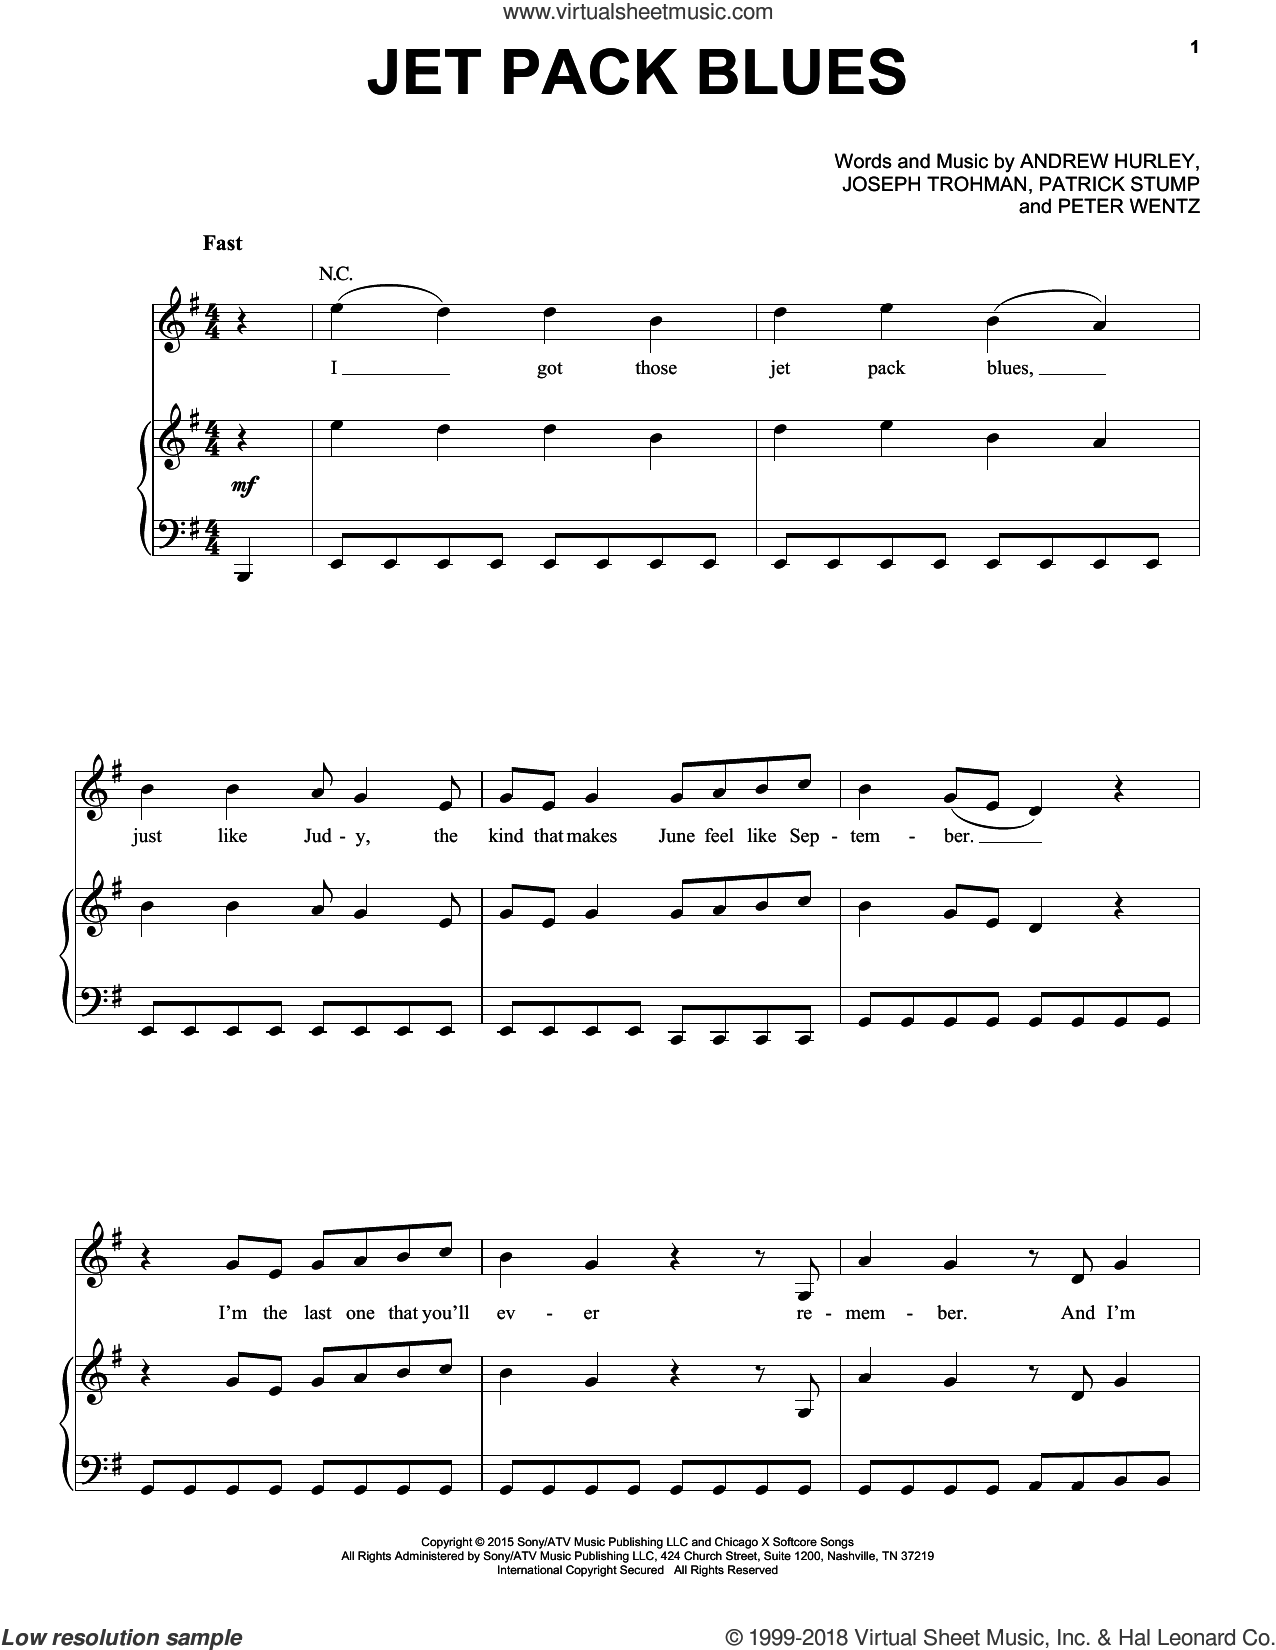 Jet Pack Blues sheet music for voice, piano or guitar by Fall Out Boy, Andrew Hurley, Joseph Trohman, Patrick Stump and Peter Wentz, intermediate skill level